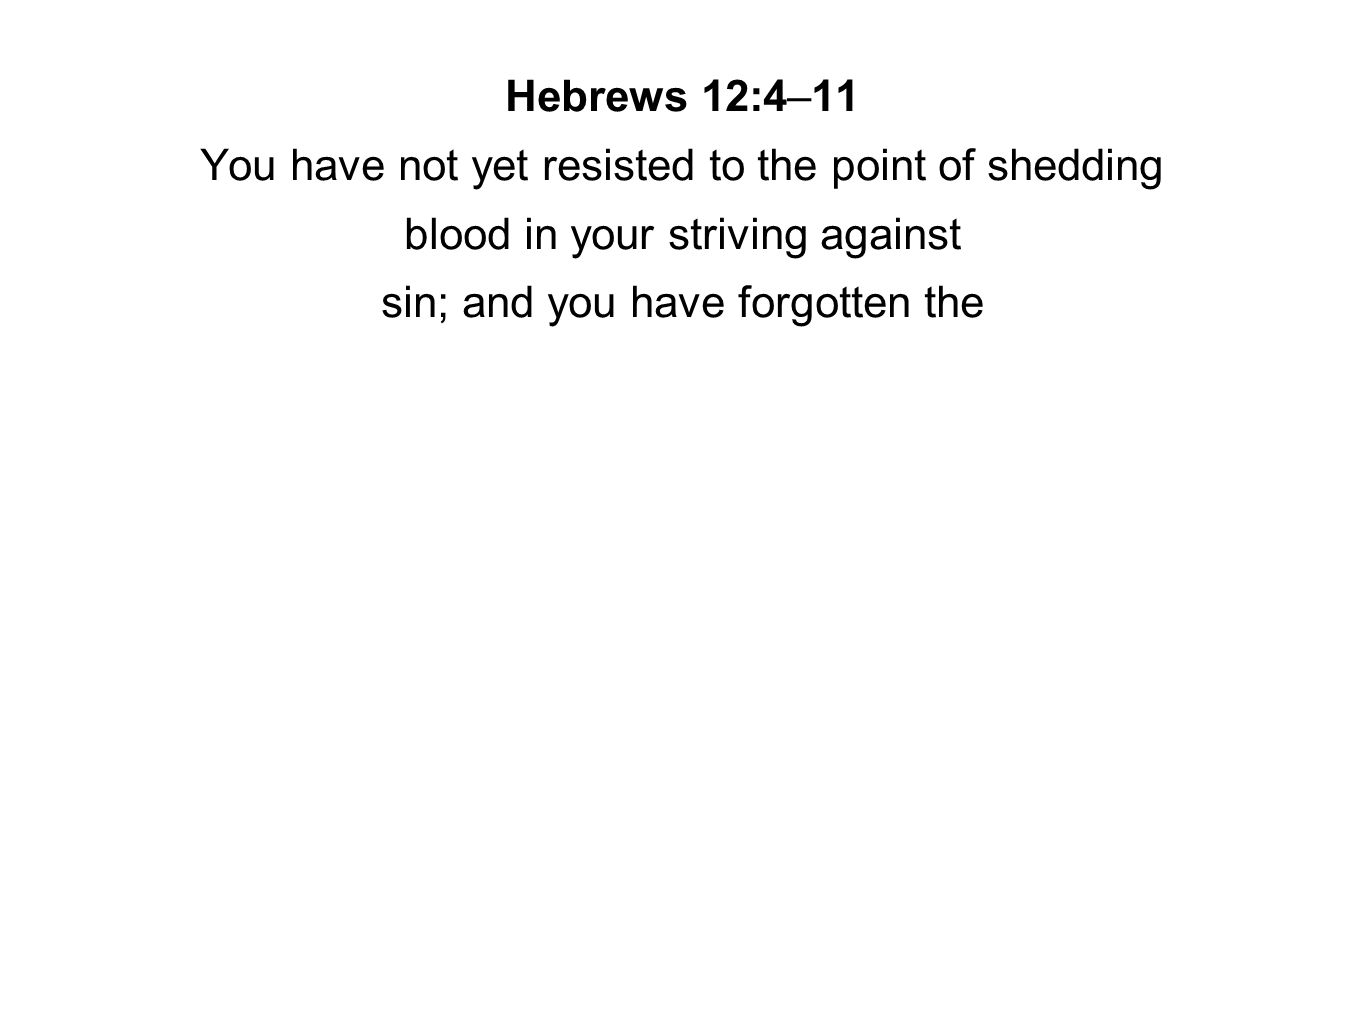 Hebrews 12:4–11 You have not yet resisted to the point of shedding blood in your striving against sin; and you have forgotten the